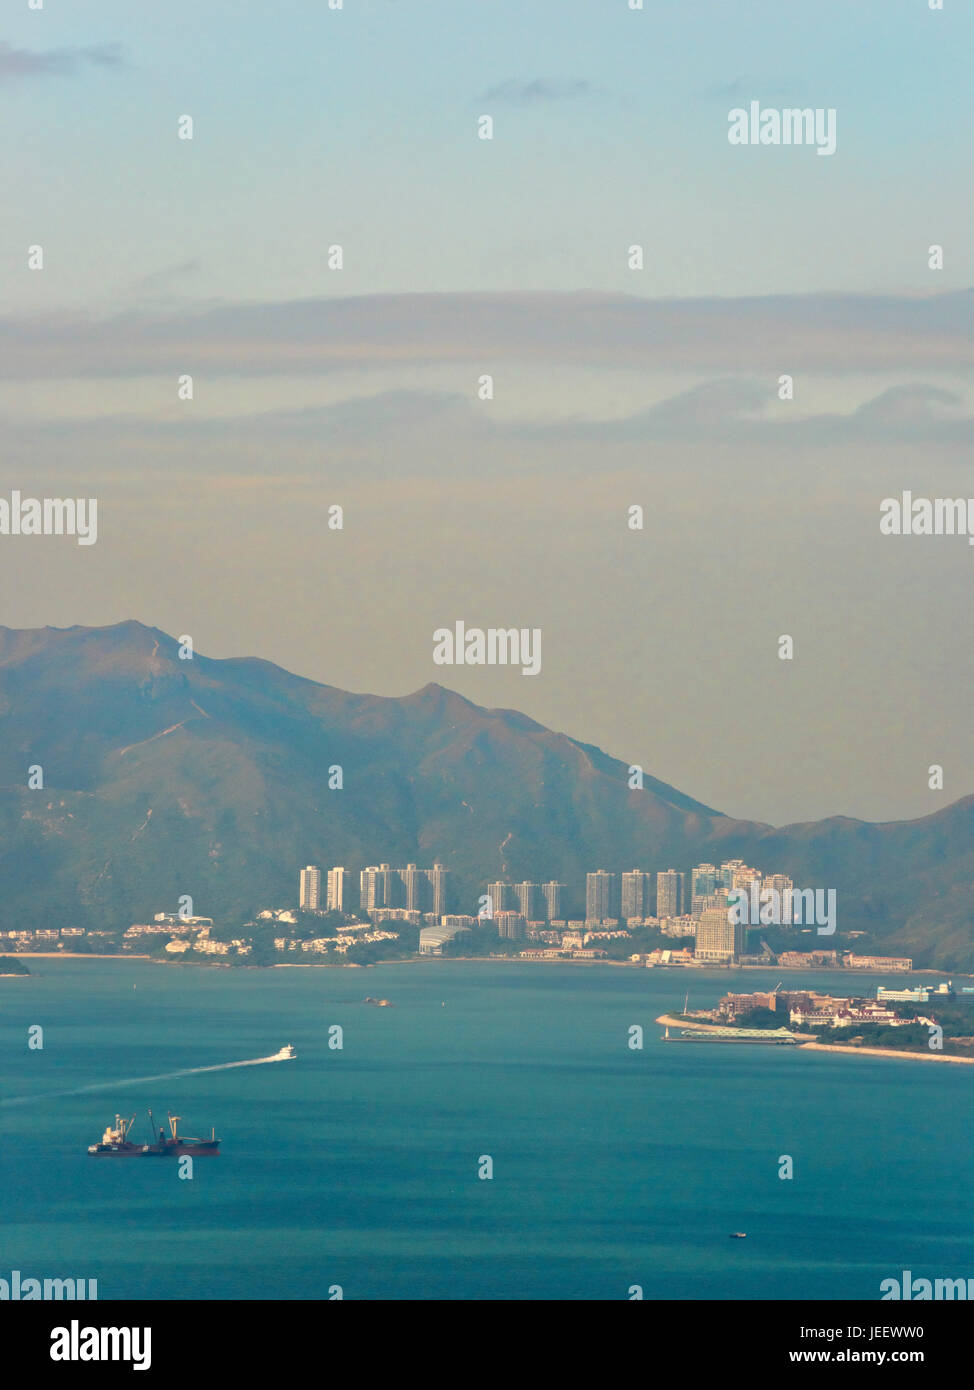 Vertical aerial landscape of Discovery Bay on Lantau Island in Hong Kong, China. - Stock Image